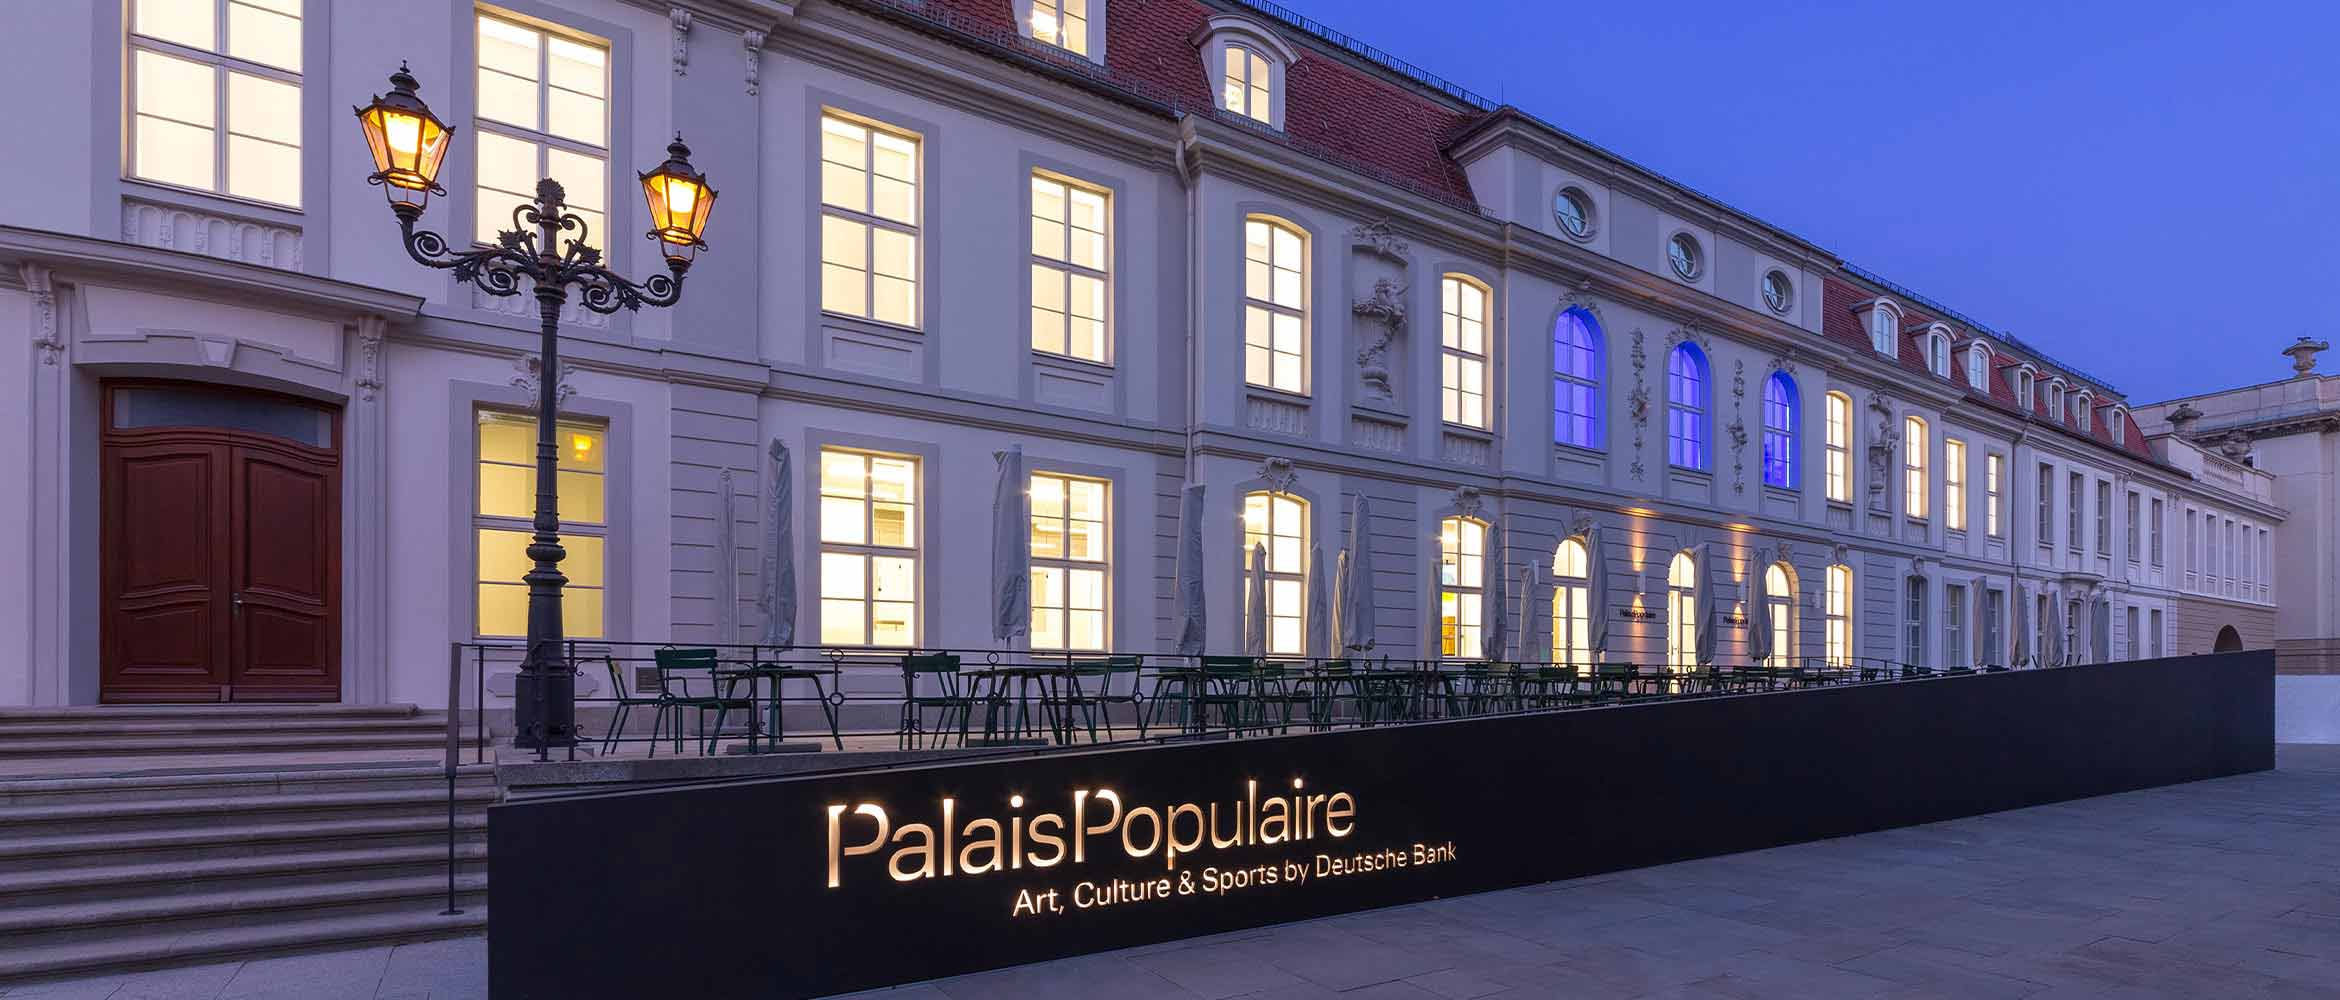 PalaisPopulaire: Berlin's grand new forum for art, culture and sport